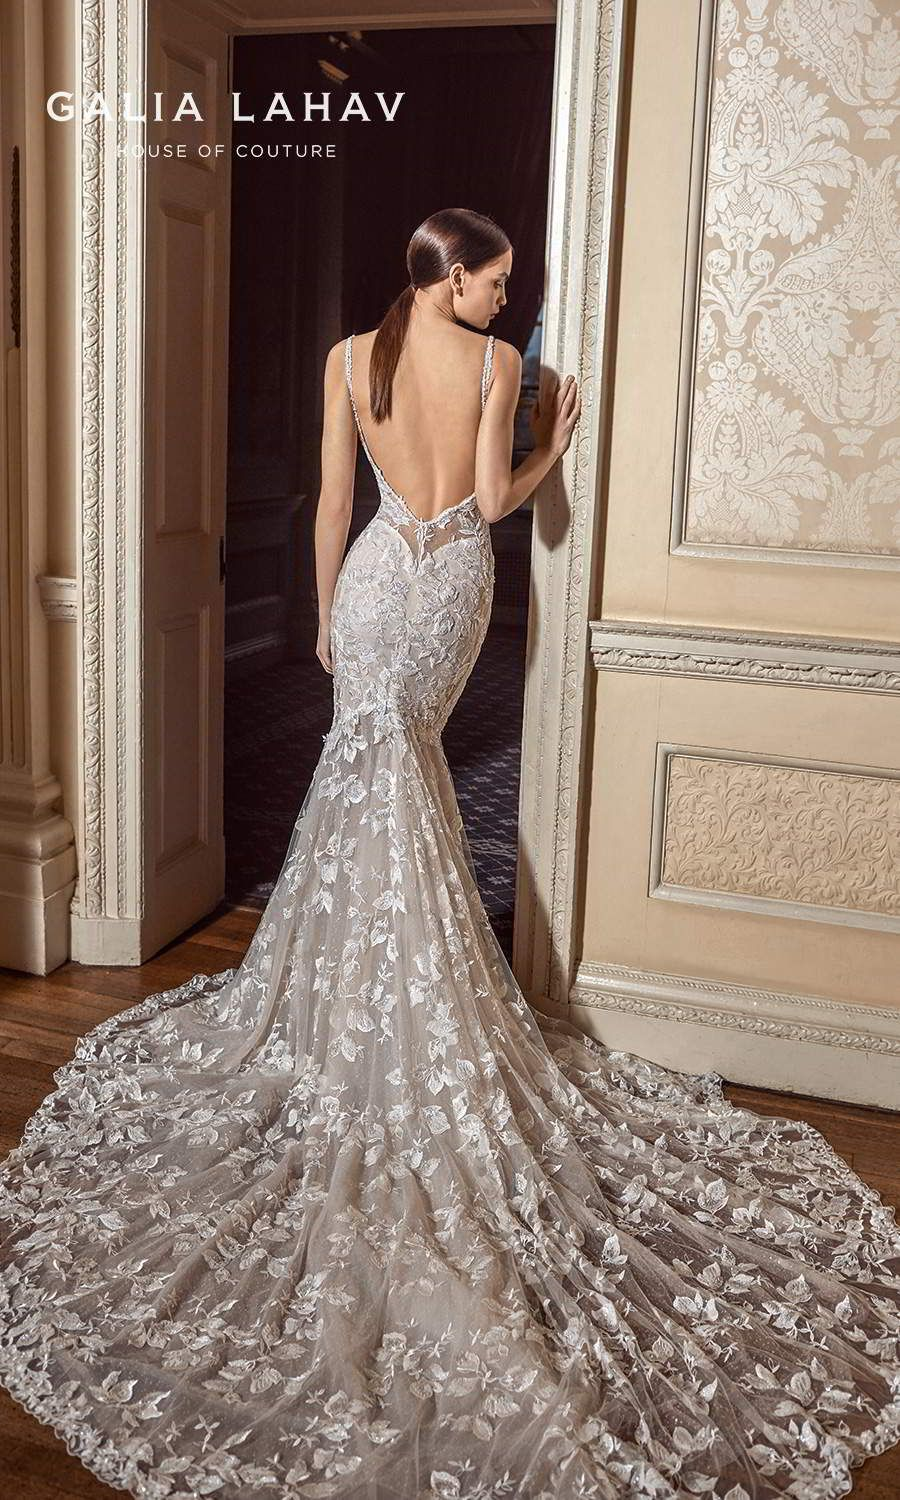 These Galia Lahav Wedding Dresses Are Made For Dancing Fall 2021 Couture Bridal Collection Wedding Inspirasi In 2021 Galia Lahav Wedding Dress Bridal Gowns Mermaid Backless Wedding Dress [ 1500 x 900 Pixel ]